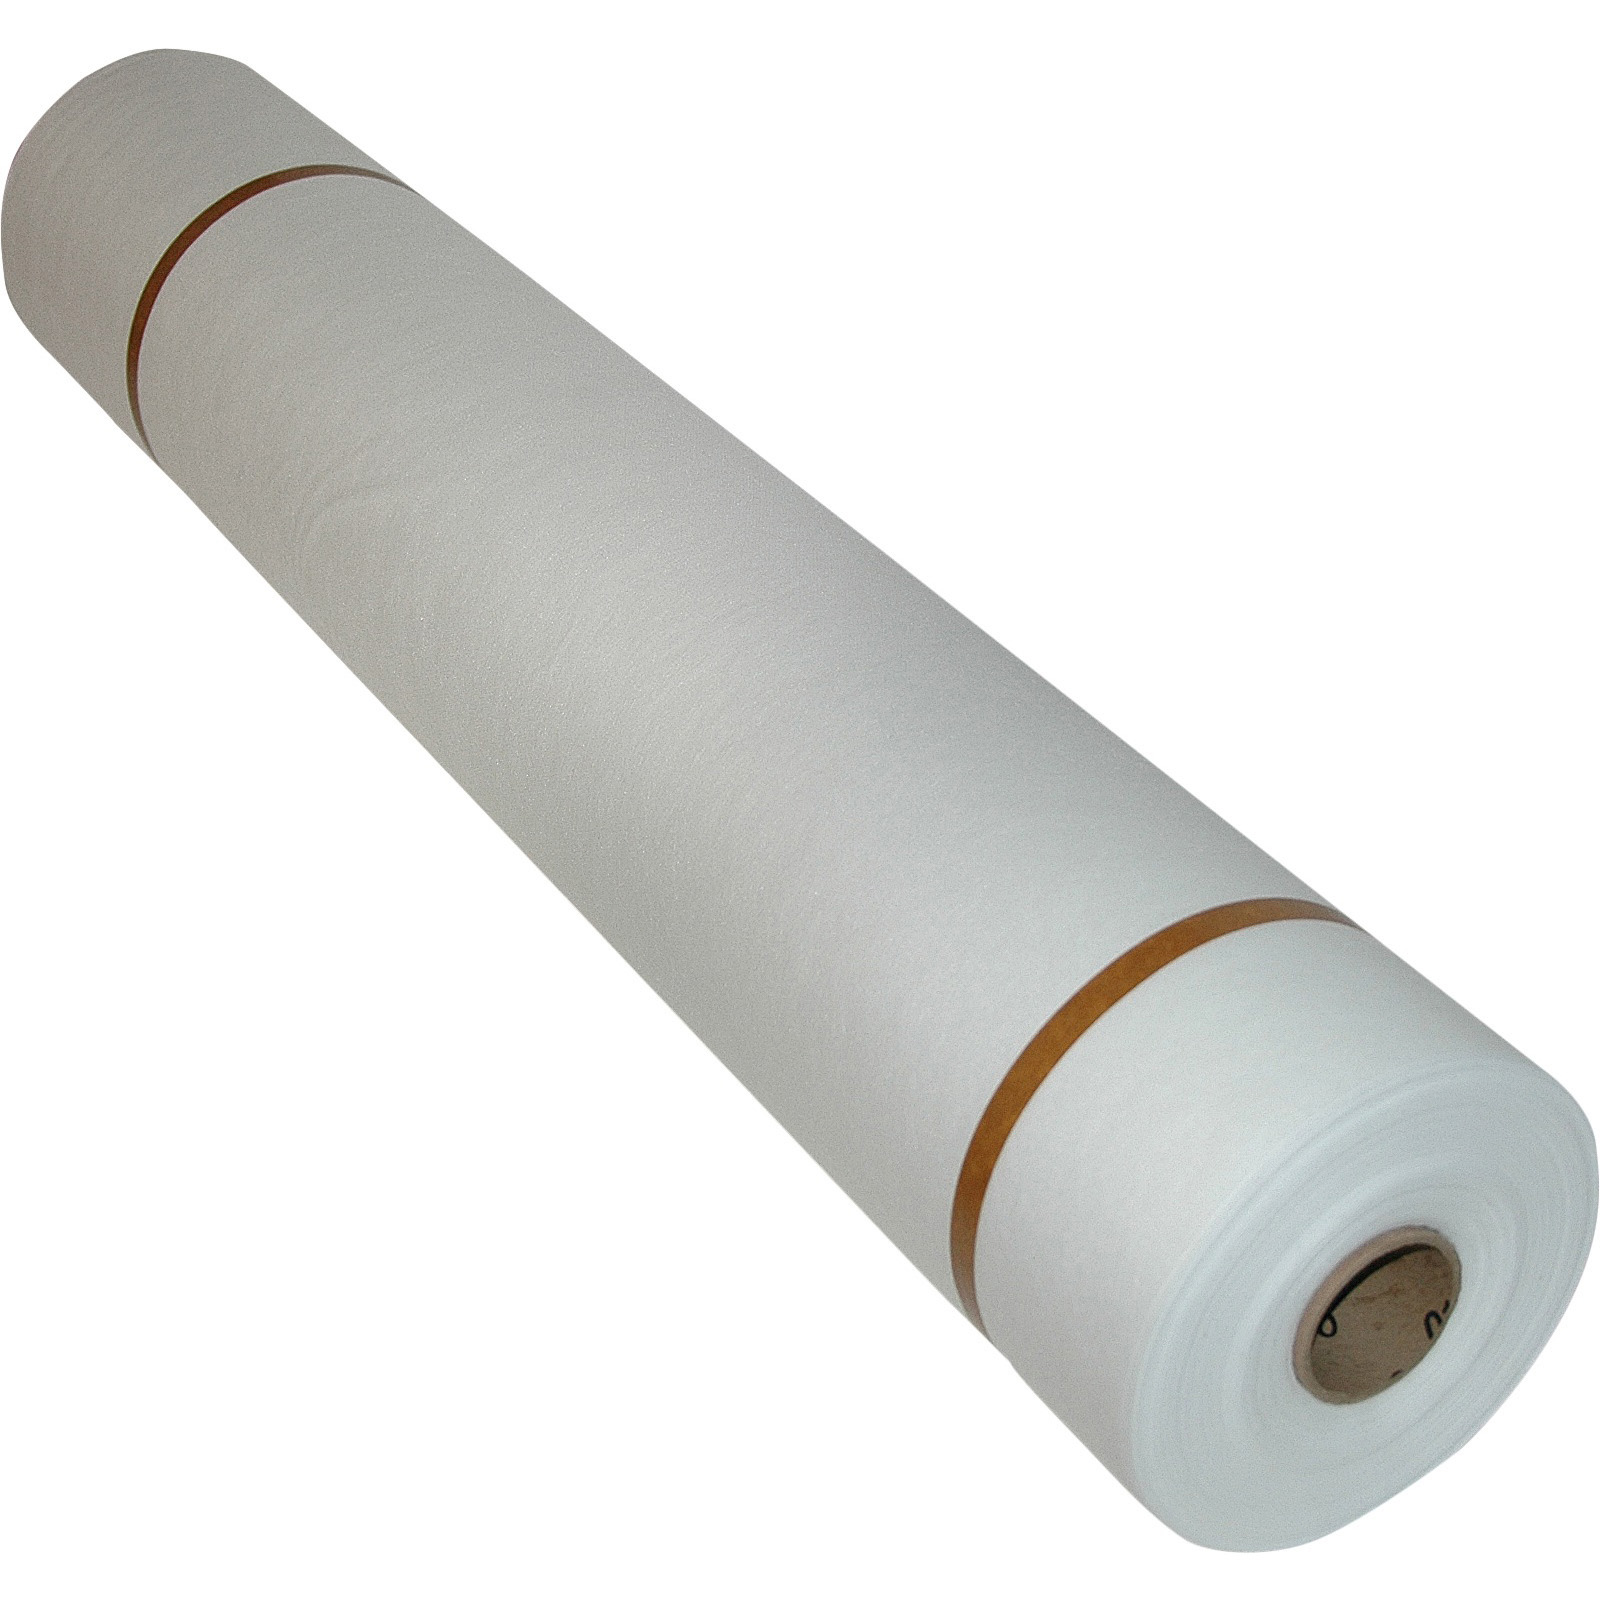 .04 oz WHITE ACCORD 38in width